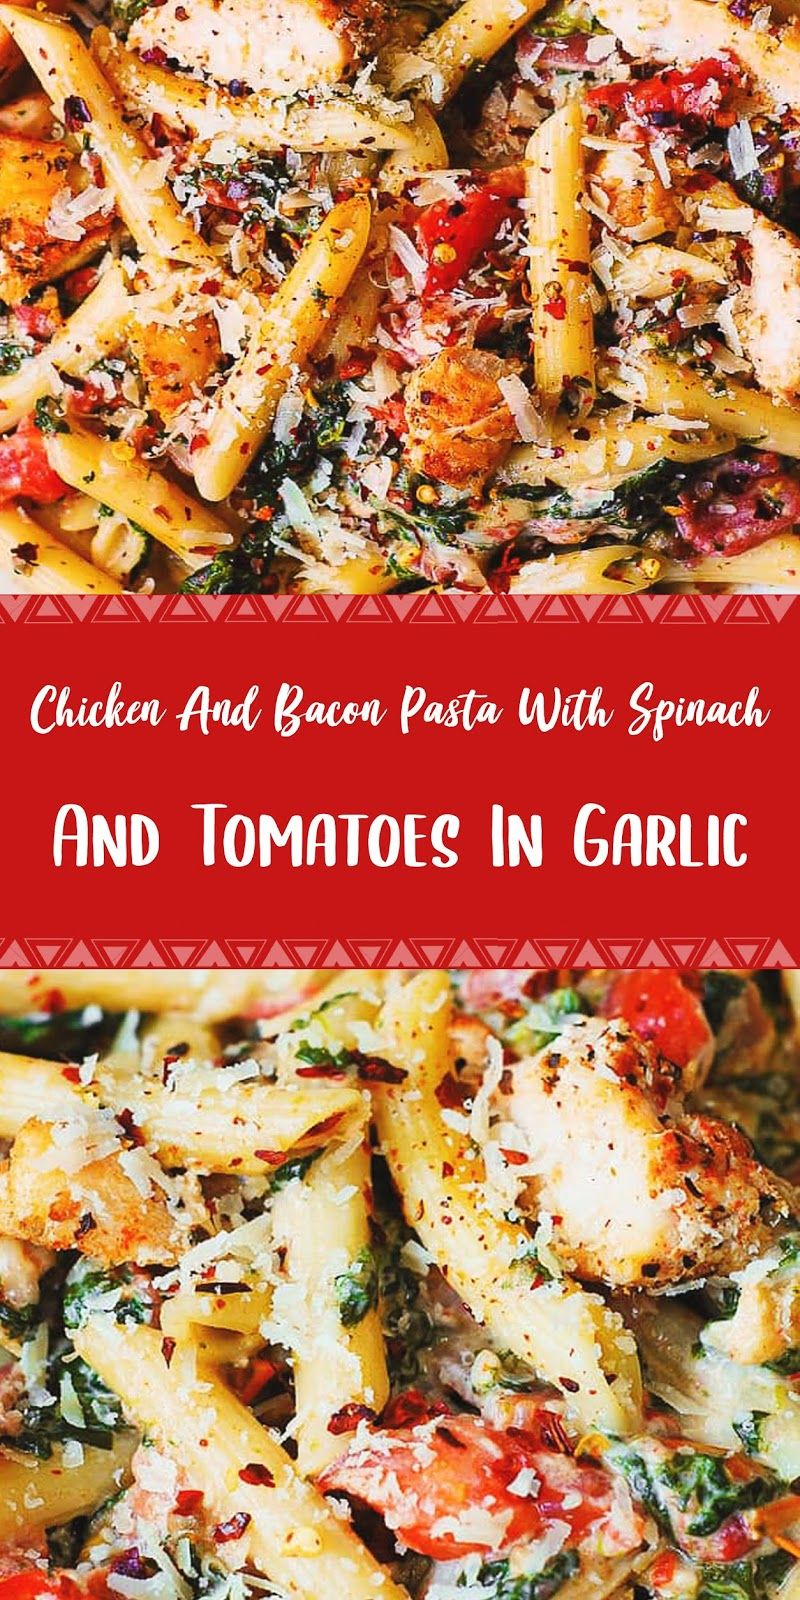 Chicken And Bacon Pasta With Spinach And Tomatoes In Garlic Cream Sauce Cooking And Recipes Recipes Dinner Reci In 2020 Bacon Pasta Garlic Cream Sauce Spinach Pasta